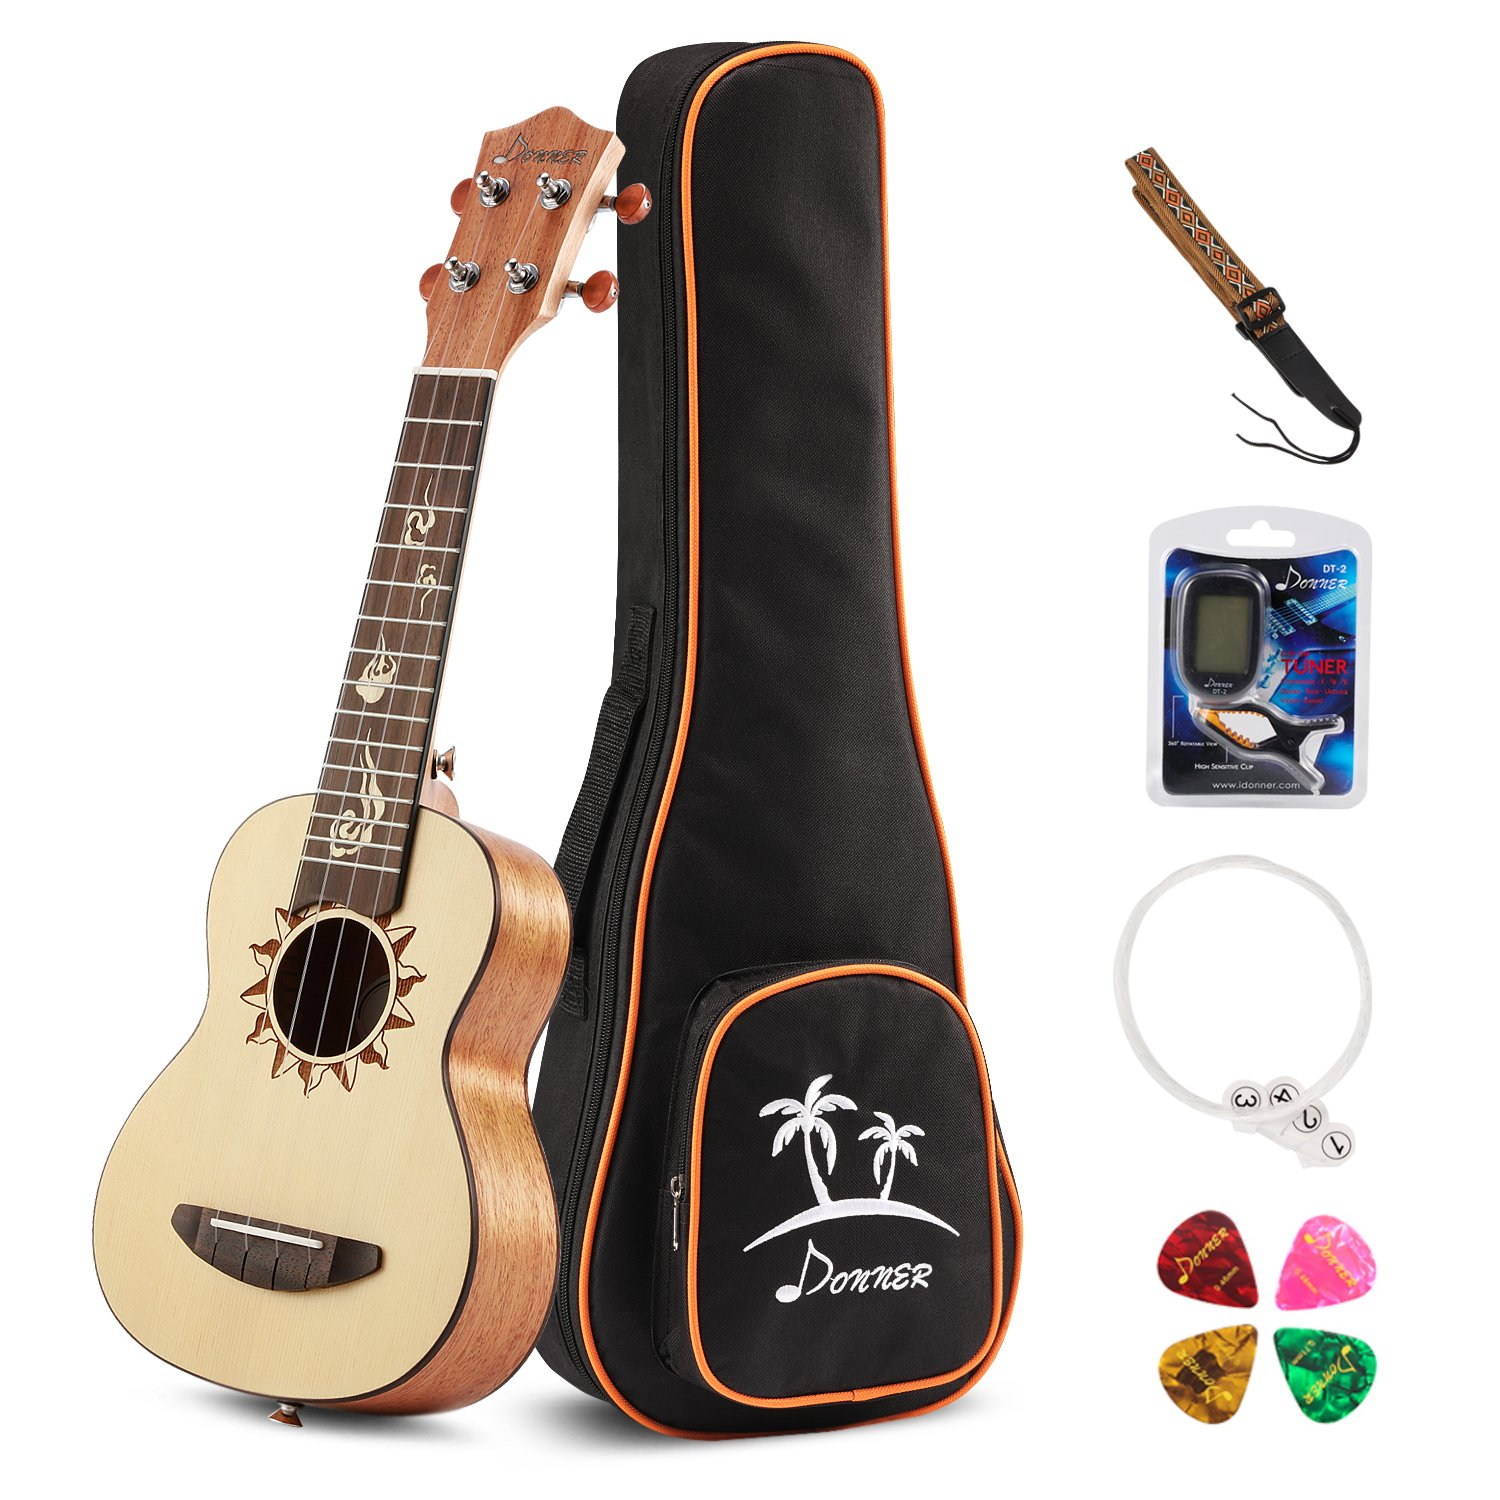 Donner Tenor Ukulele DUT-3 26 inch Spruce Body Sun Pattern Ukulele Kit with Tuner Strap String Case DUT-1